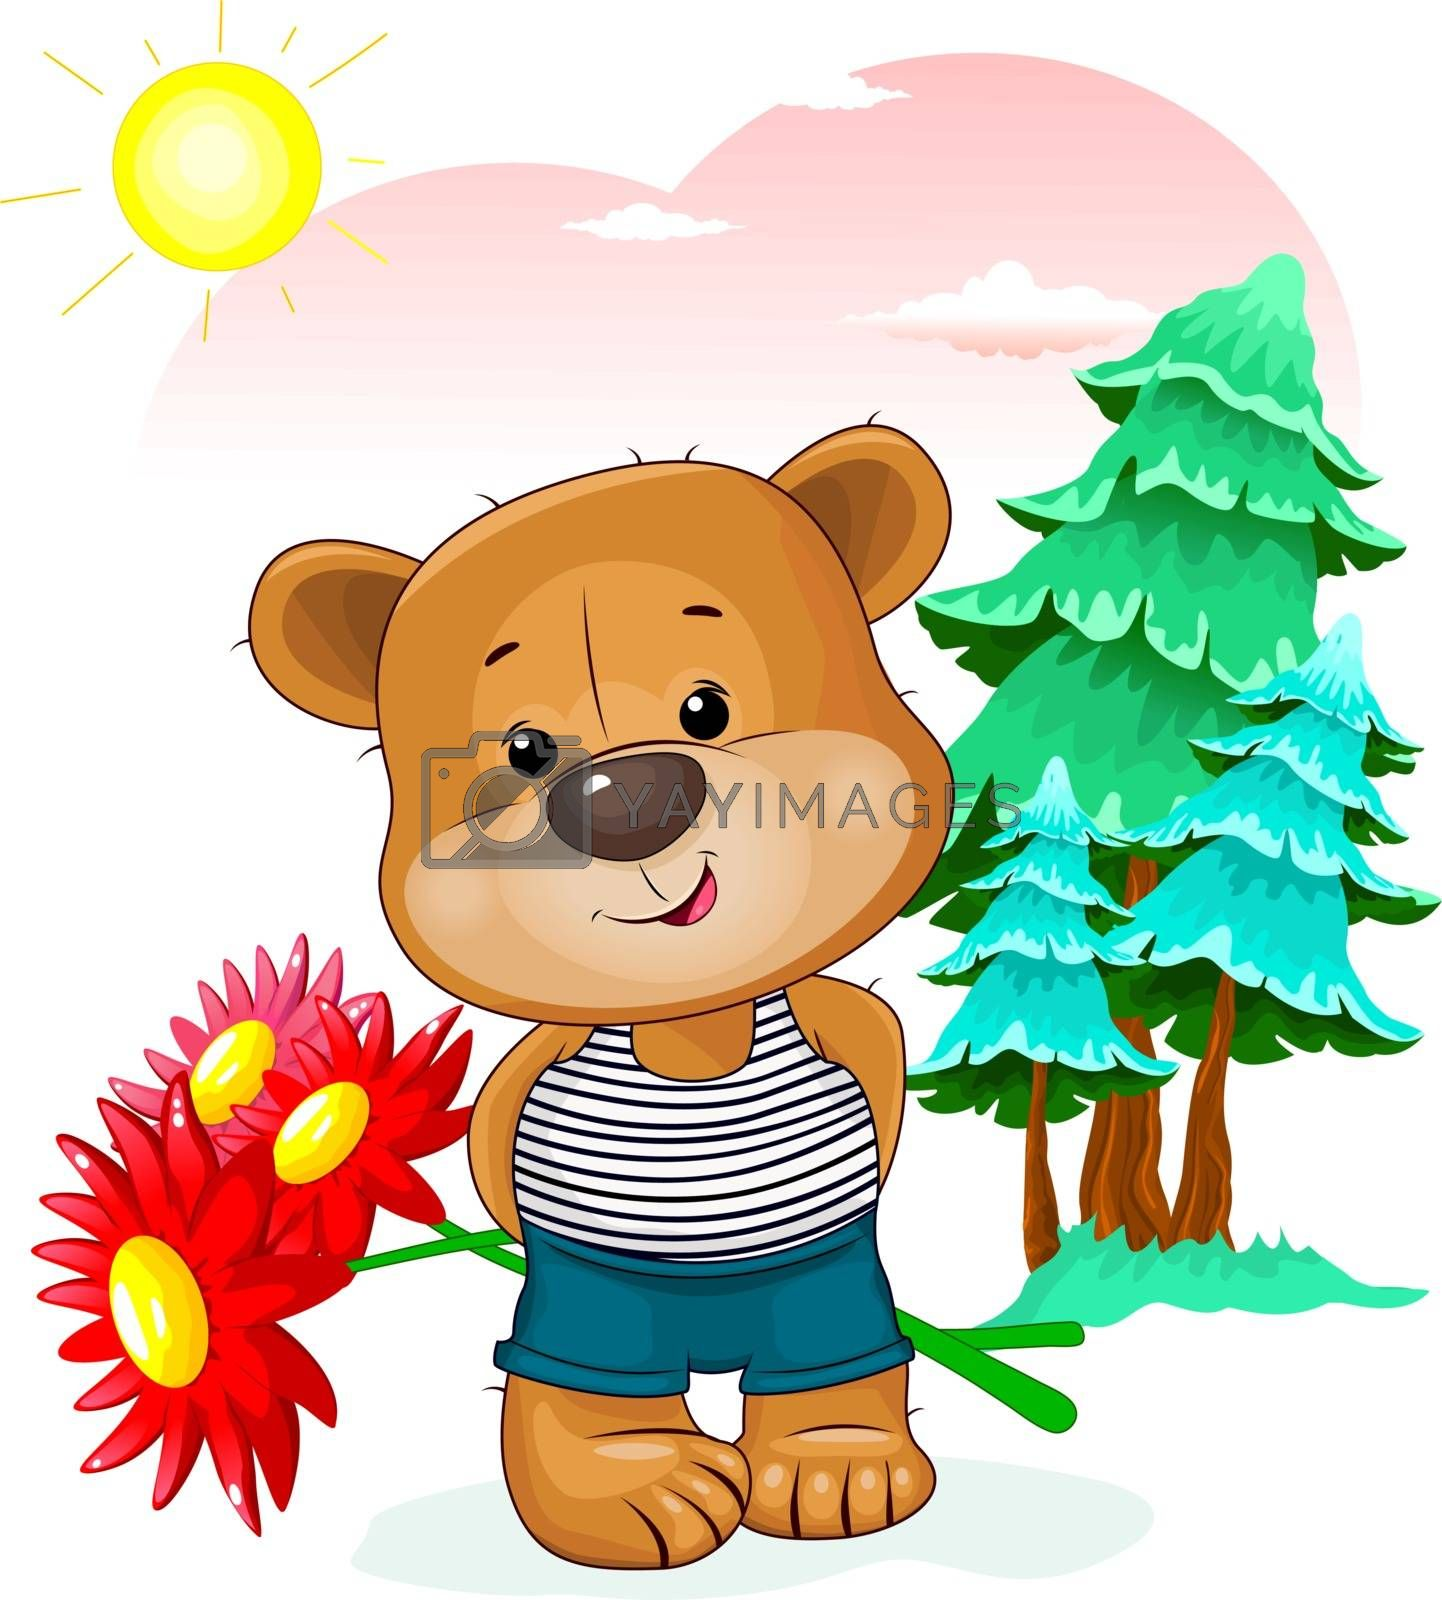 Little bear with flowers on the background of trees, sky and sun. A bear holds a bouquet of red flowers.